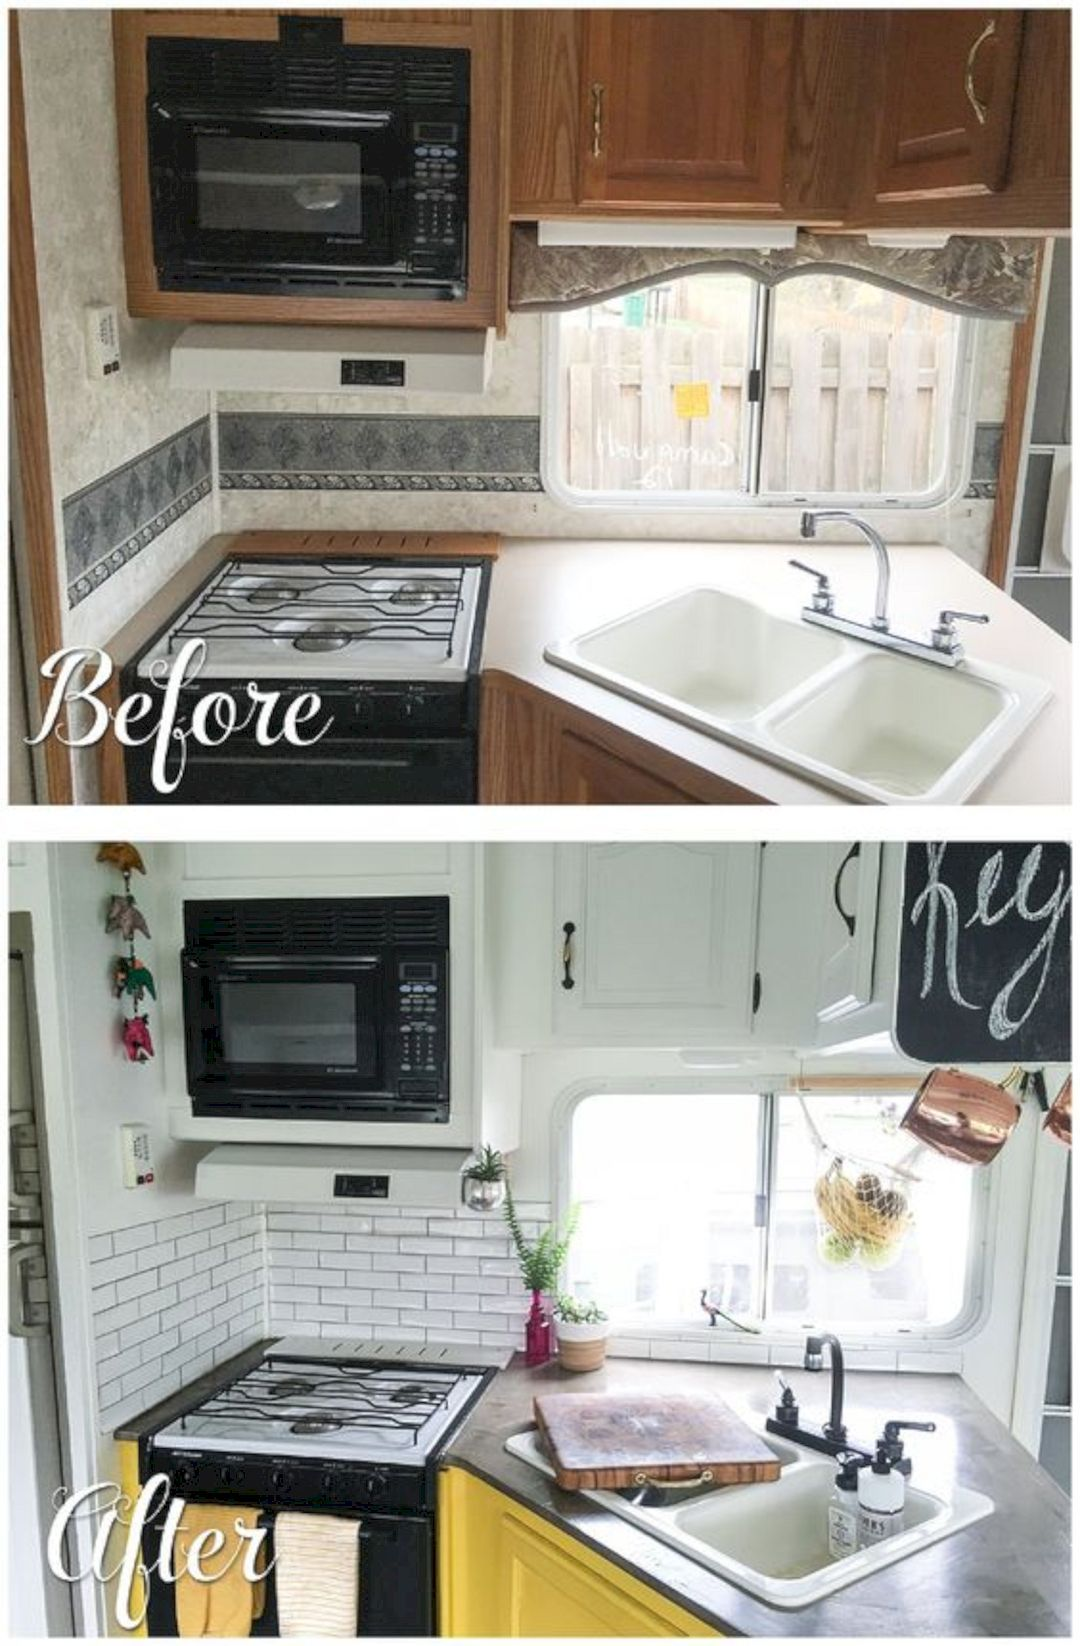 15 Awesome Camper Renovation Ideas For a Happy Camper Life | Camper on travel trailer blinds and shades, travel trailer furniture, travel trailer floor plans, travel trailers shabby chic, cool rv interior ideas, rv decorating ideas, travel trailer super lightweight, travel trailer tiny house, personal watercraft interior ideas, travel trailer paint schemes, travel trailer decor, modern mobile home interior ideas, manufactured home interior ideas, travel trailer crafts, travel trailer custom interiors, diy rv skirting ideas, auto interior ideas, travel trailer sofas reclining, yurt interior ideas, rv renovation ideas,